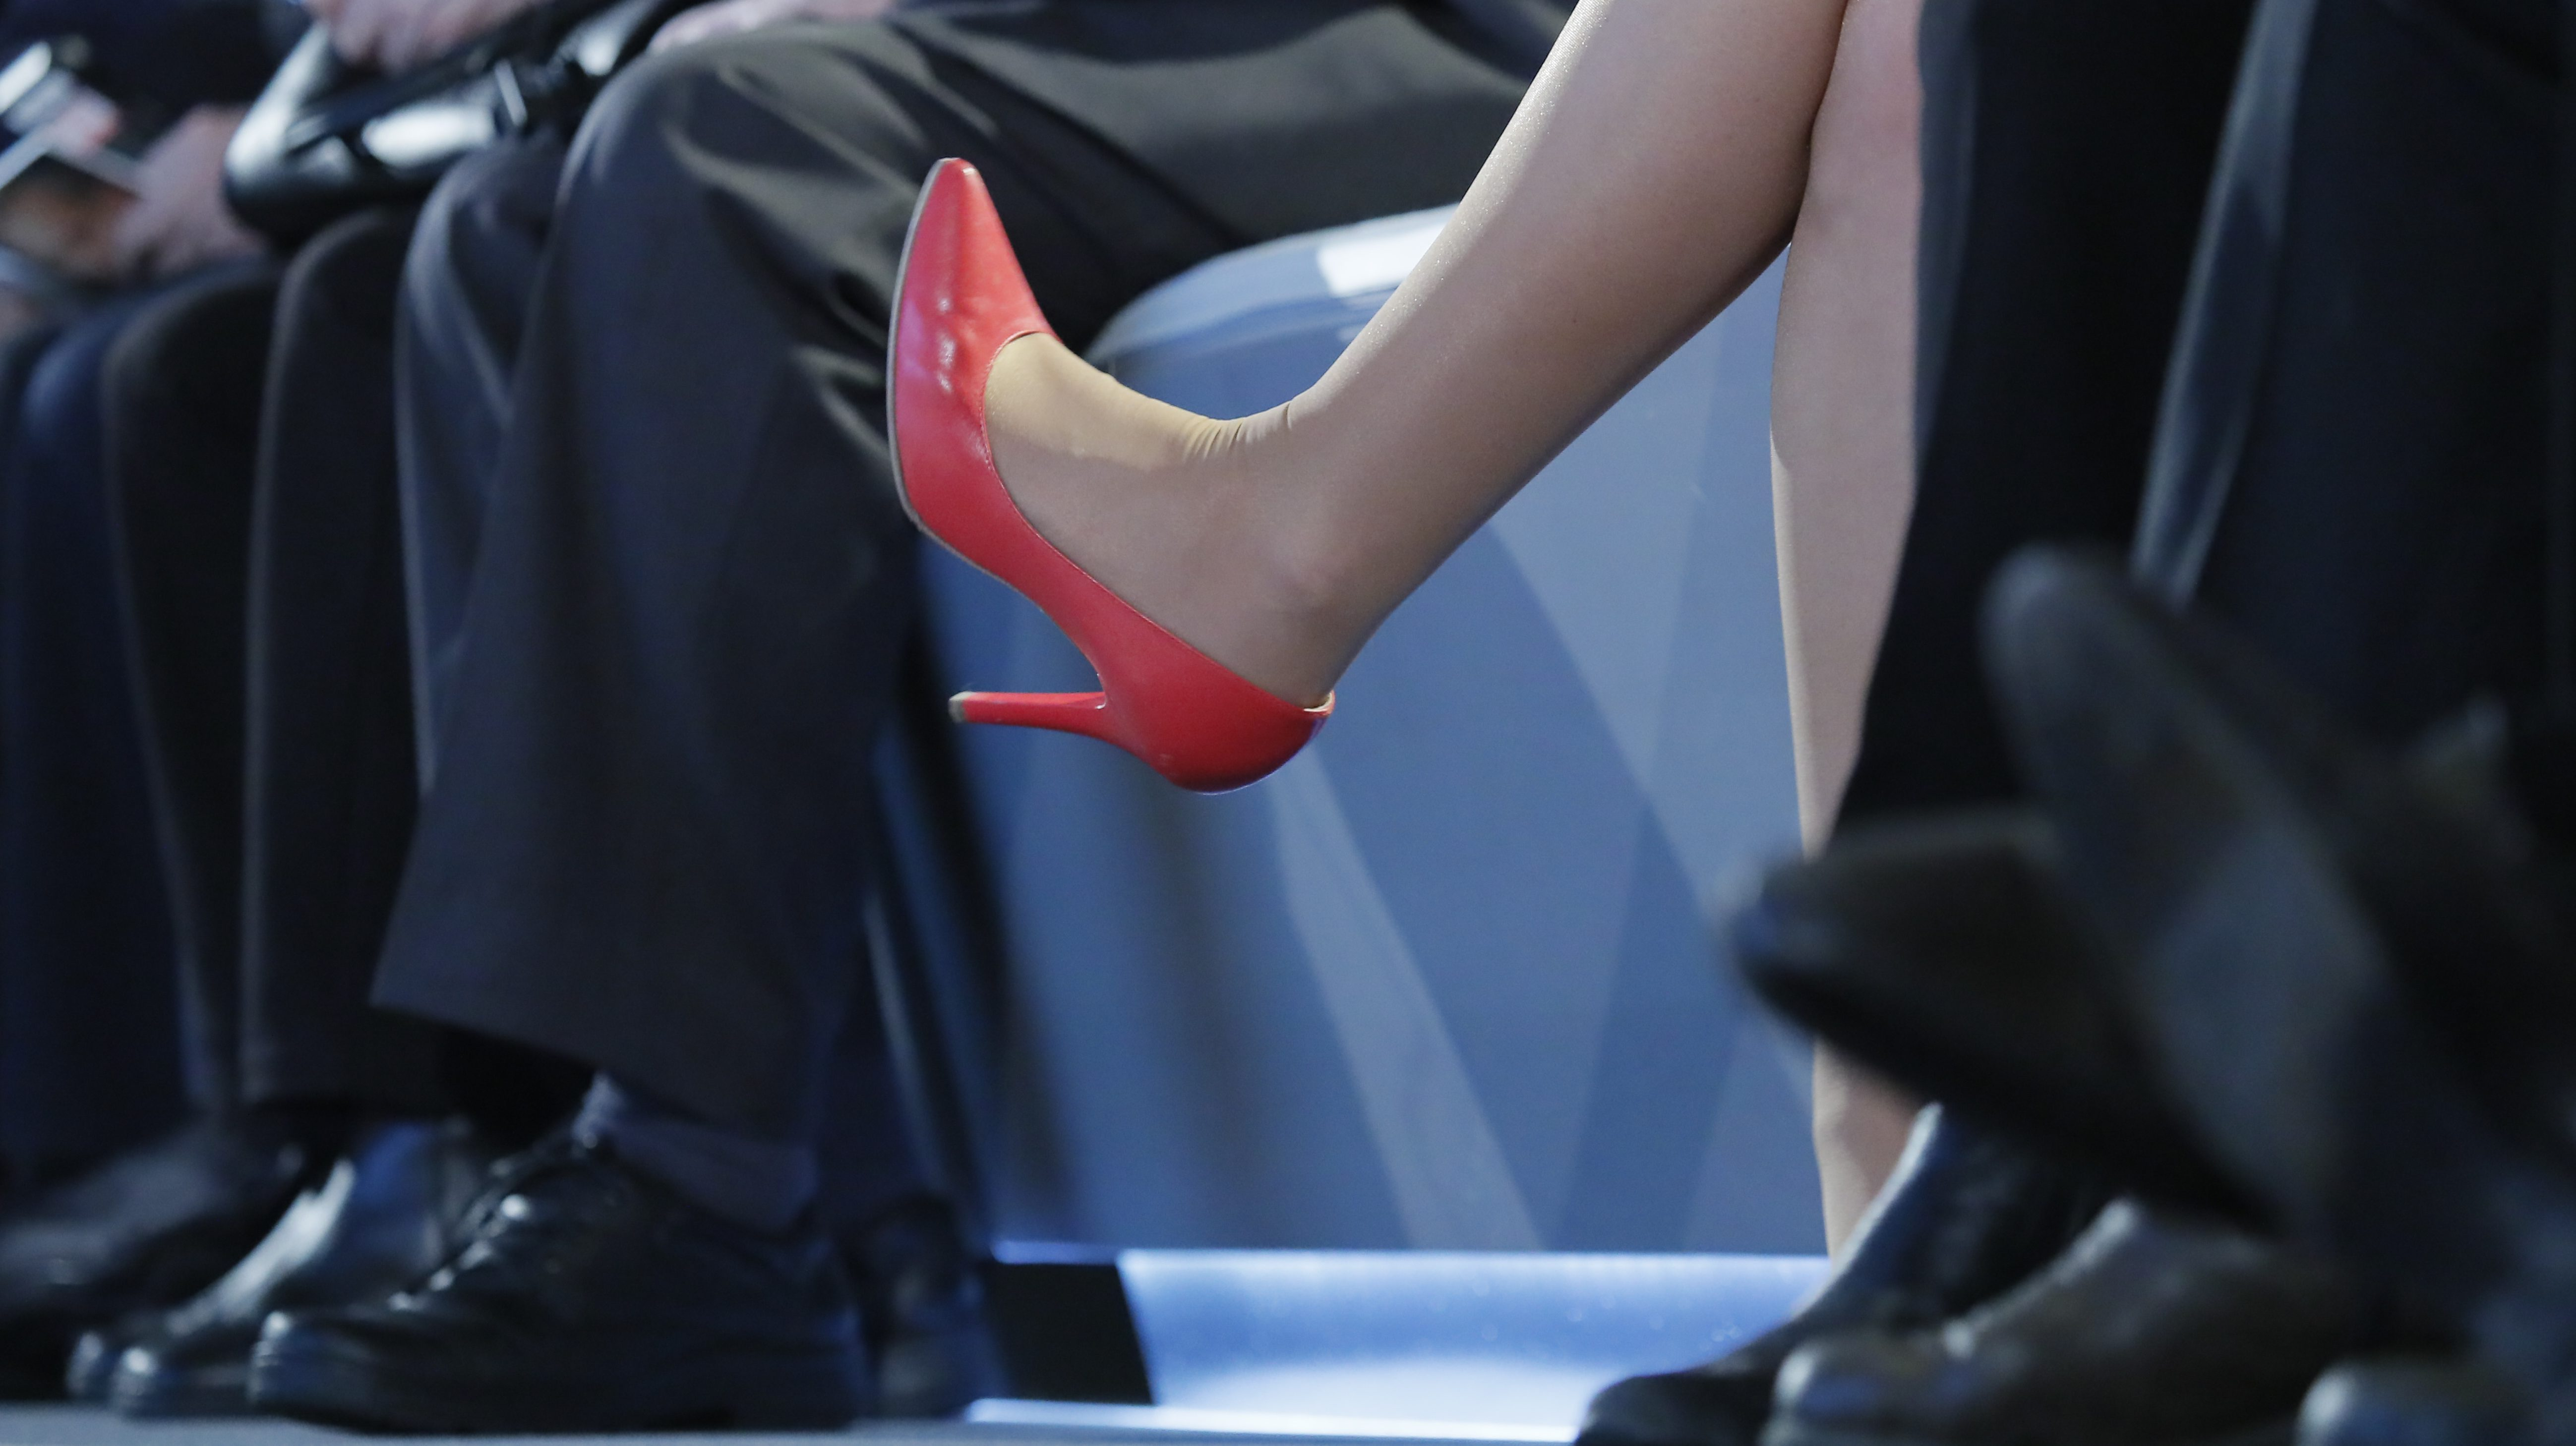 A woman wearing red heels sits among men wearing black pants and black shoes.